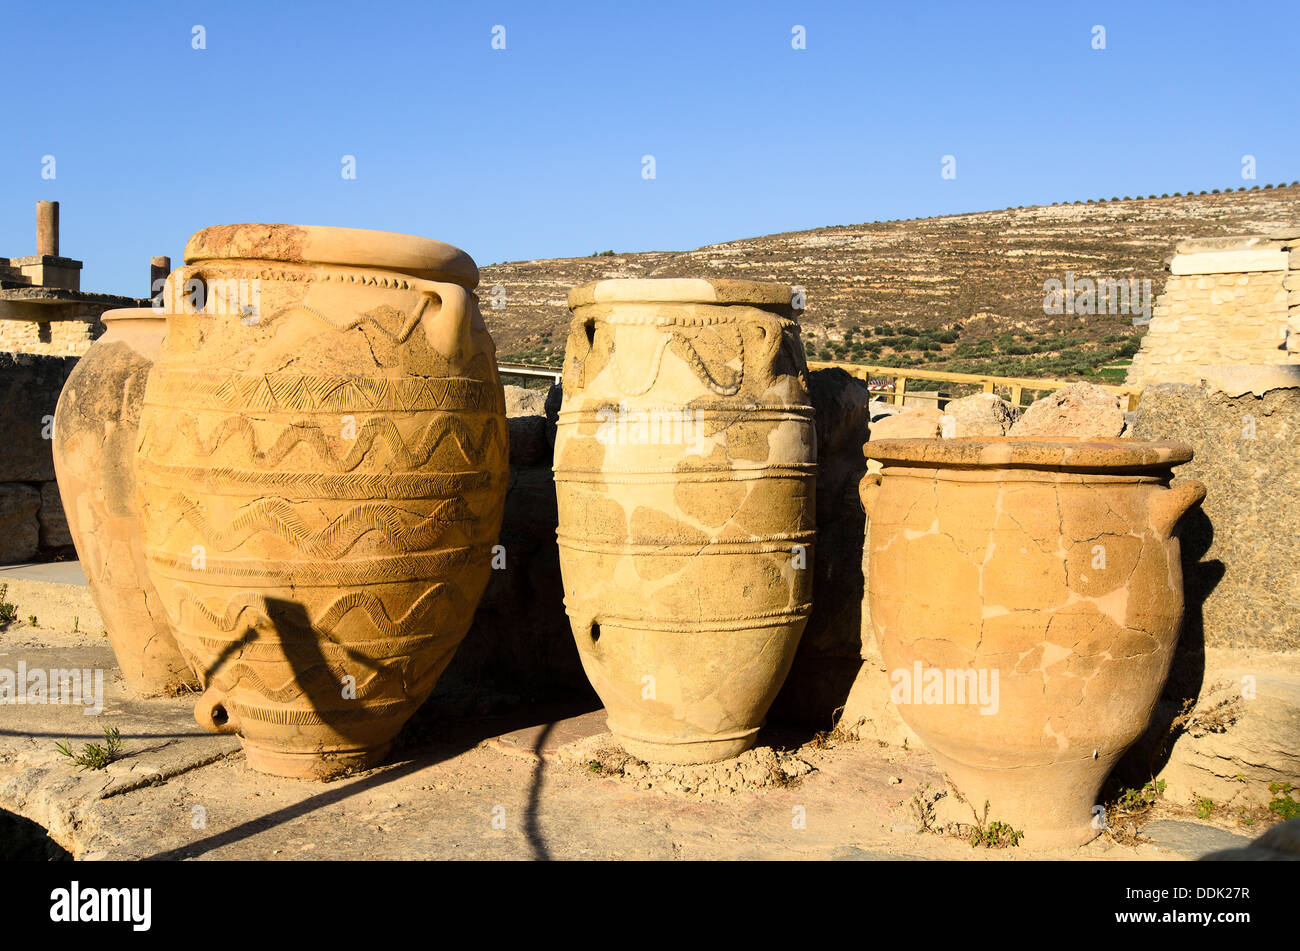 Giant Antique Amphoras From The Knossos Palace Crete Greece Stock